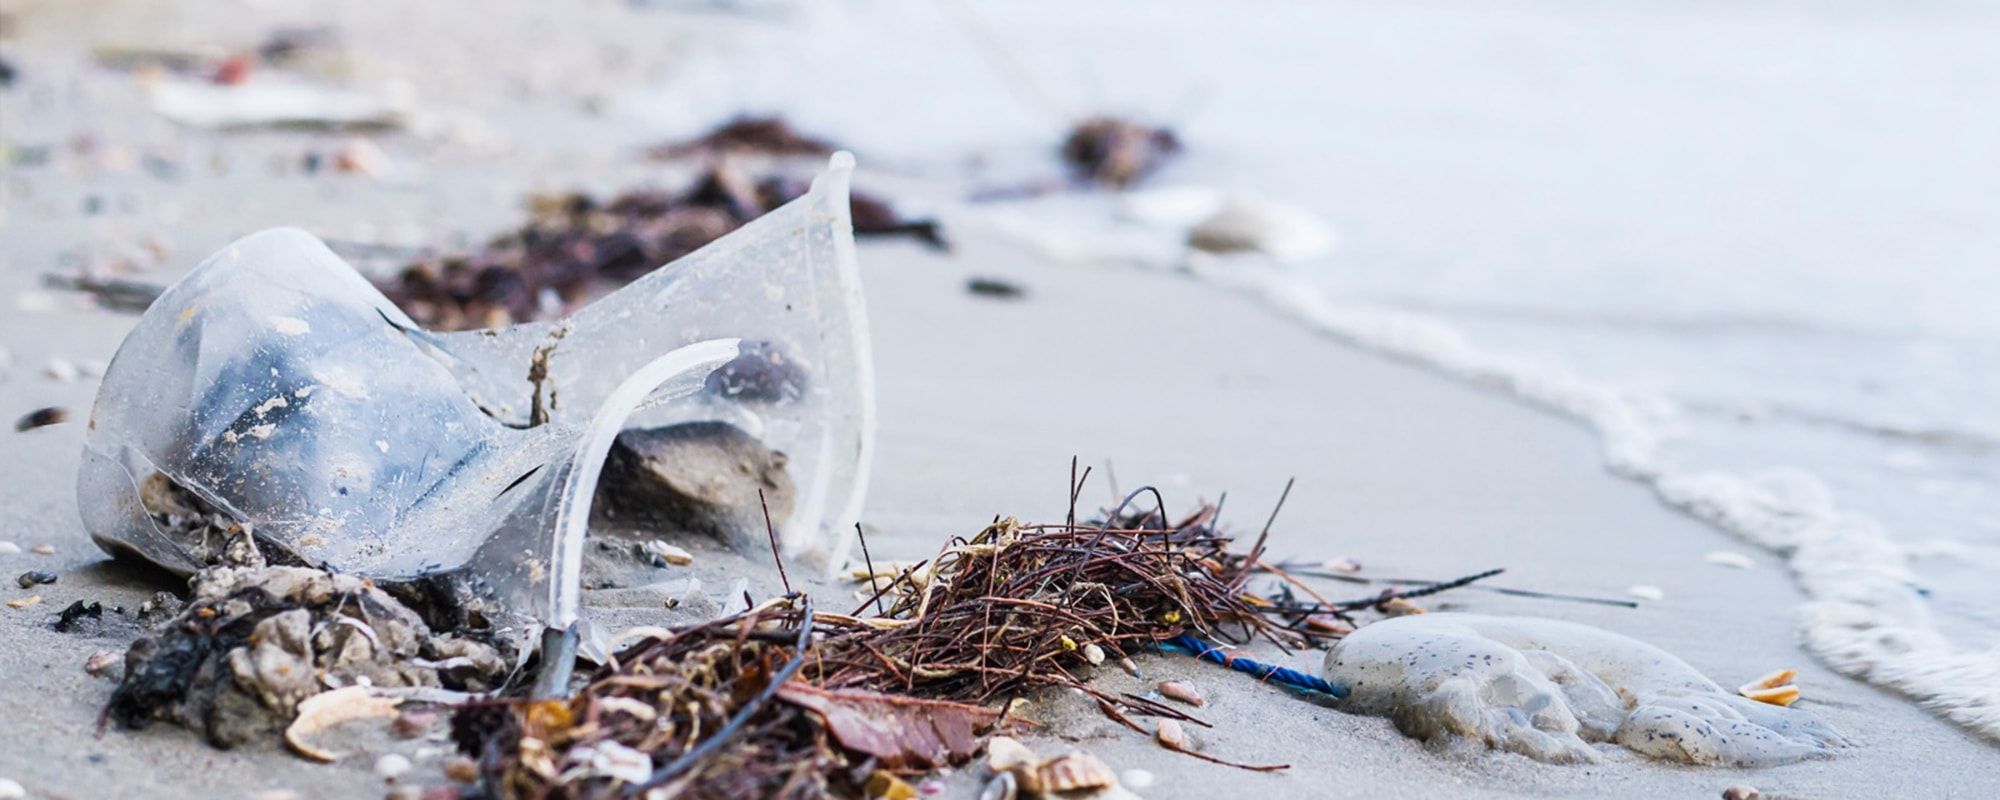 6 Tips To Reduce Ocean Plastic Pollution Right Now